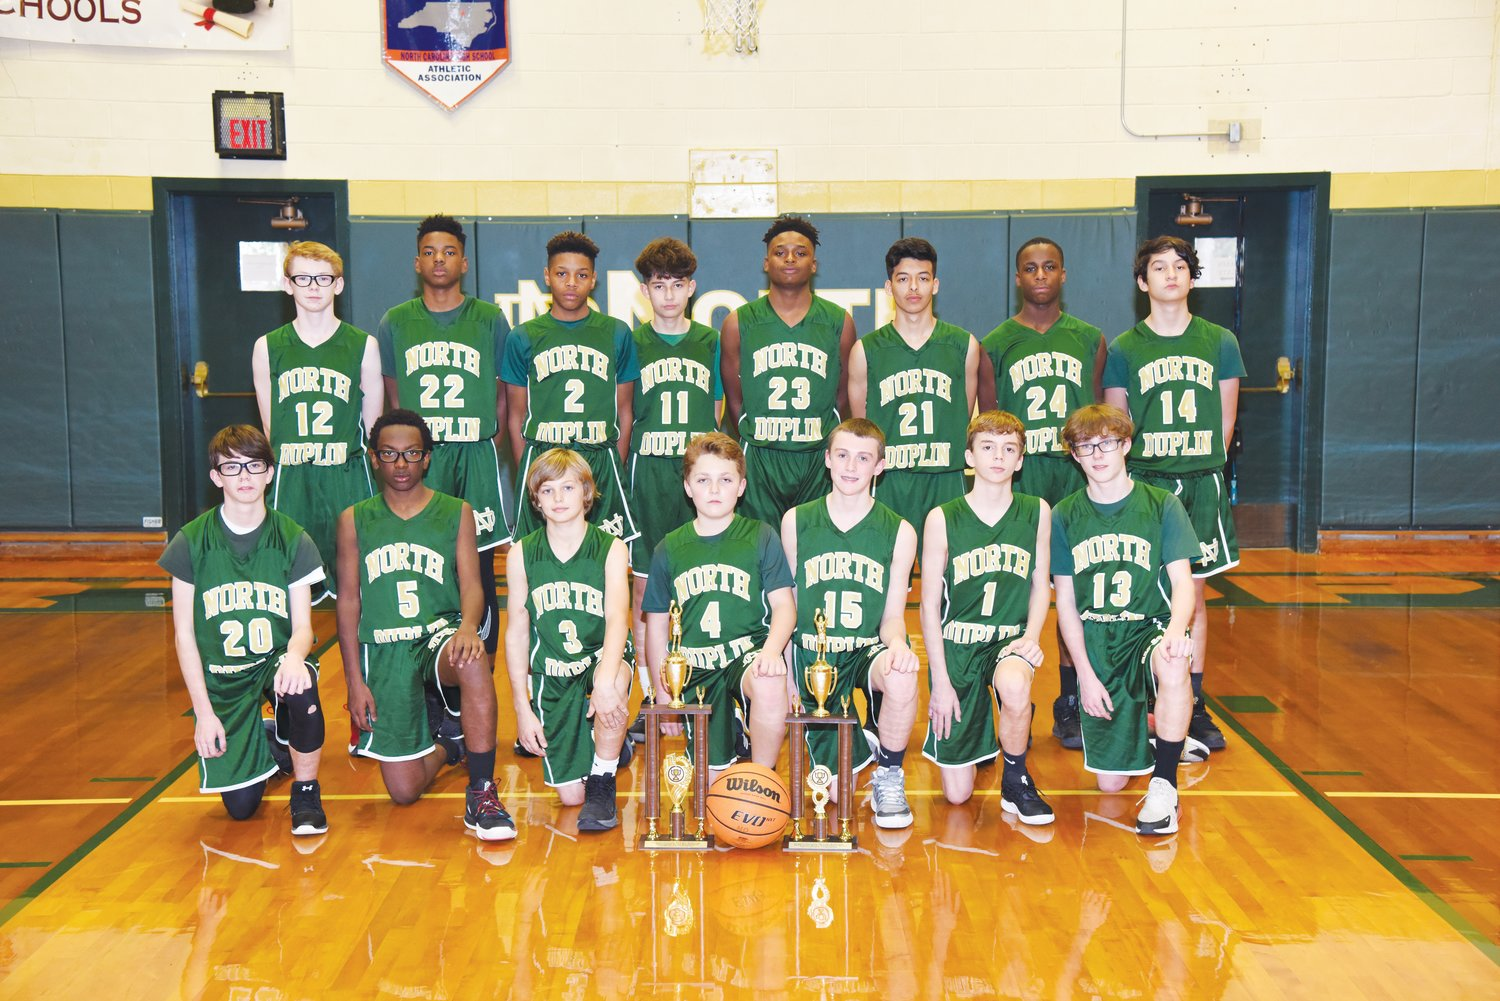 Rebels rule the hardwood.The North Duplin Middle School boys' basketball team emerged as the Duplin County Middle School regular-season and tournament champion for 2019-20. Members of the team, front row, left to right, are Joey Parrish, Anthony Kornegay, Branson Martin, Hunt Pate, Luke Kelly, Justin Lee and Brady Byrd. Back row, from left, are Mason Blust, Micha Lesesene, Donavan Armwood, Jacob Valasquez, Dujuan Arnwood, Branden Reyna, Rahmear Gates and James Ward.